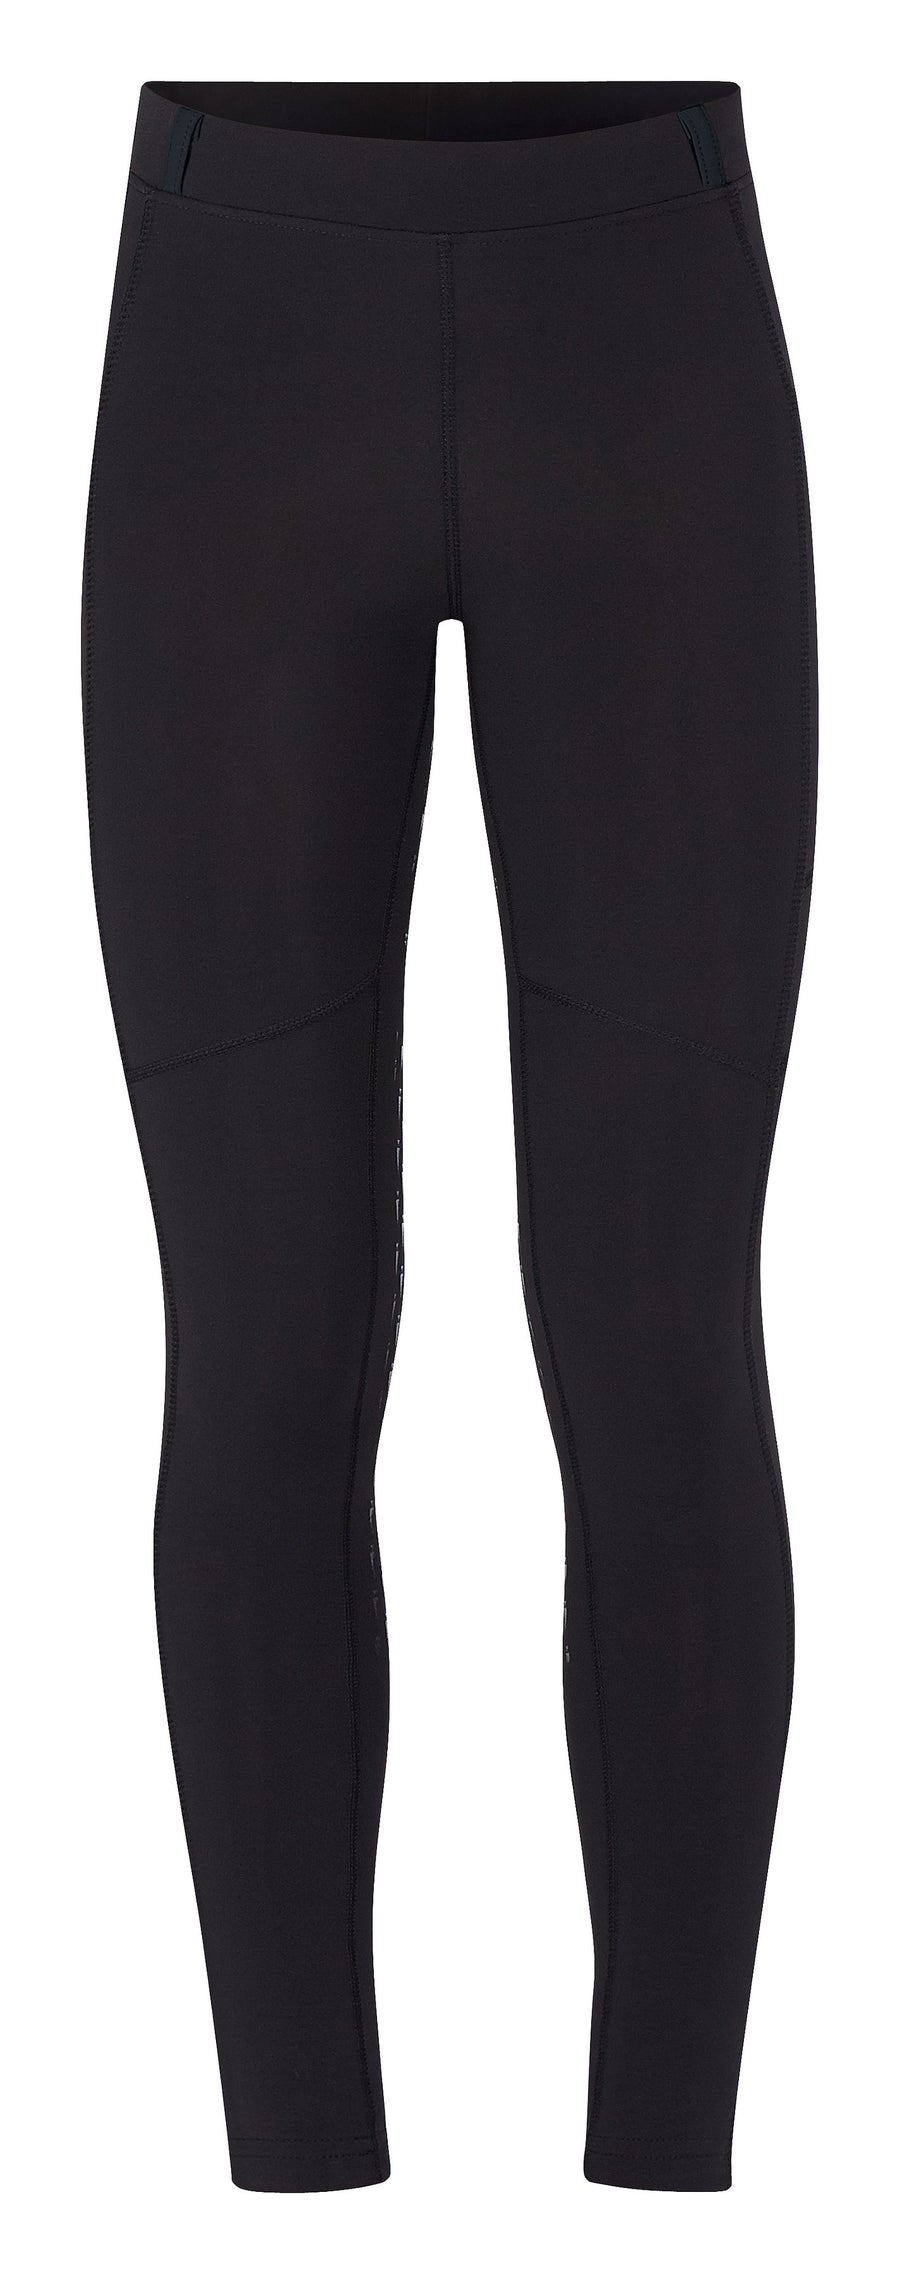 Kids' Ice Fil Tight 2019-Breeches-Kerrits-XS-Black-Manhattan Saddlery